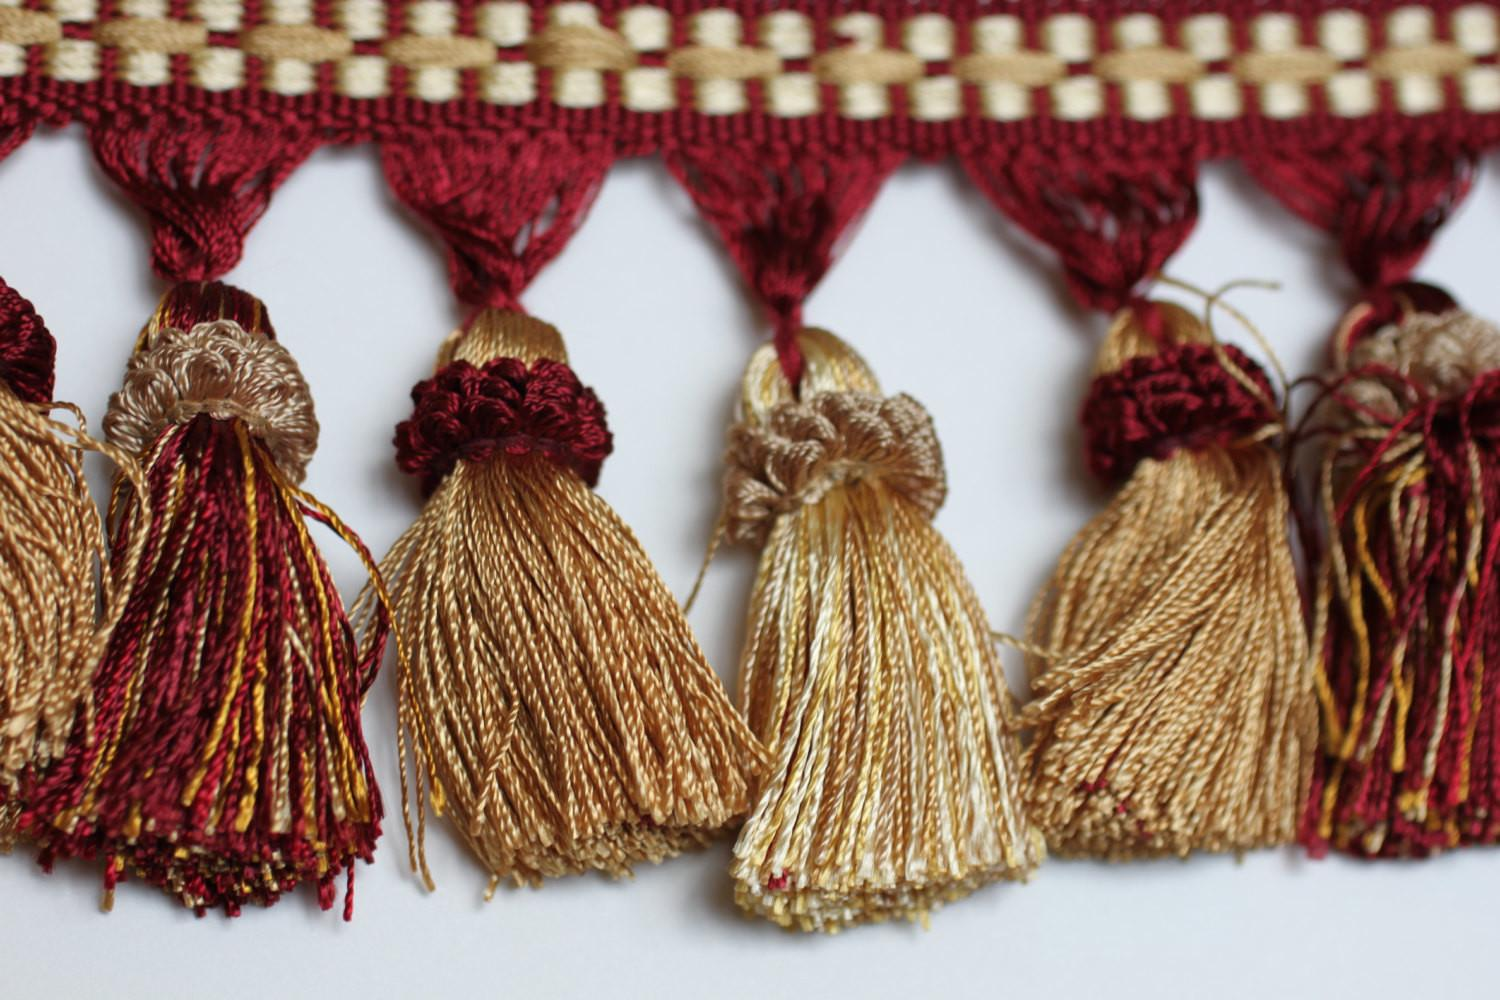 Trim Tassel Fringe Burg Gold Home Decor Tassels